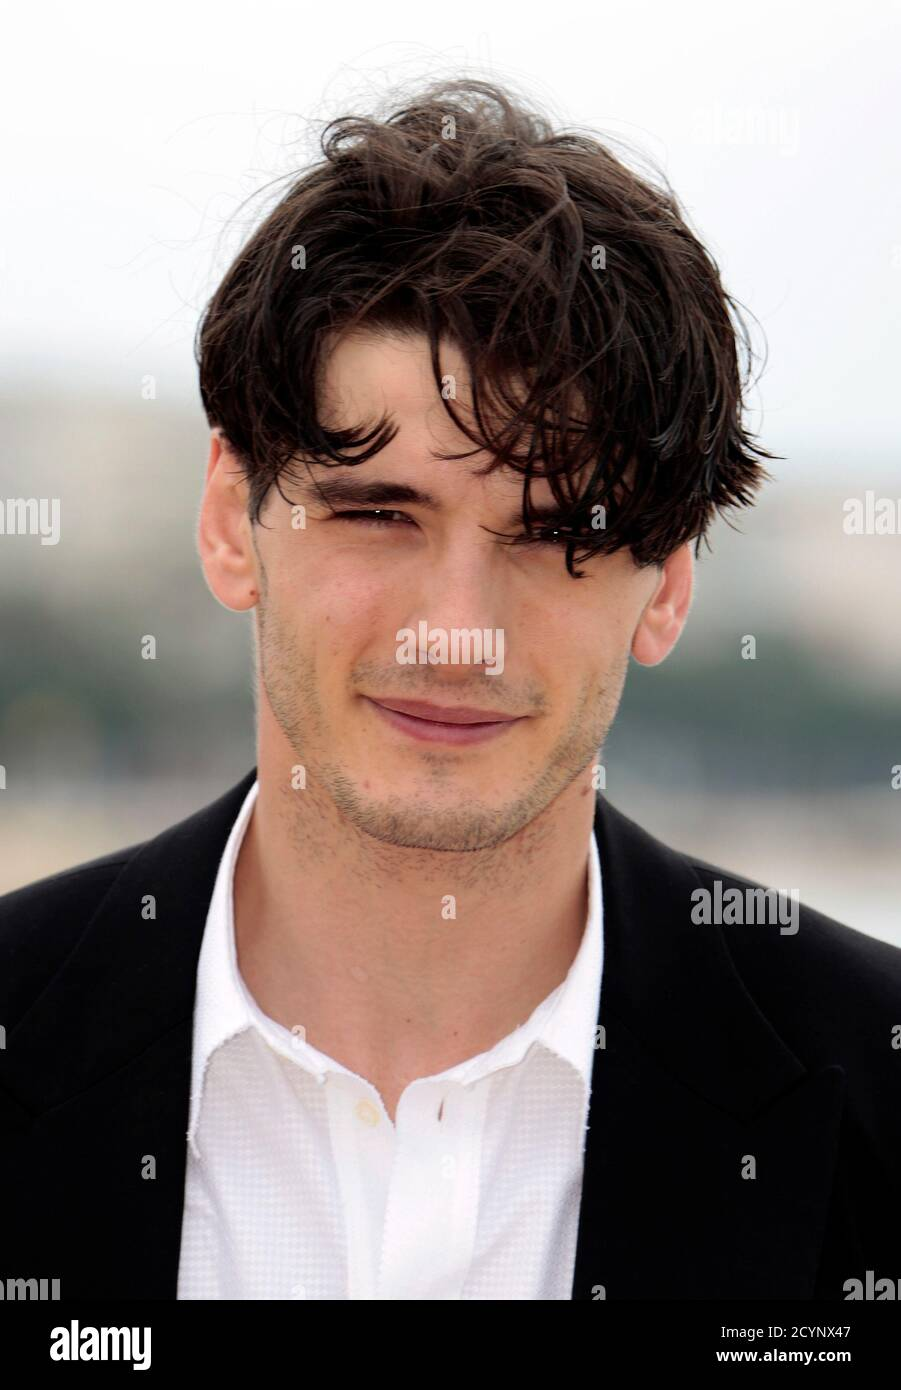 Actor Yon Gonzalez Luna Attends A Photocall For The Television Series Grand Hotel As Part Of The Miptv The International Television Programs Market Event In Cannes April 8 2013 Reuters Eric Gaillard France Yongonzálezworldfans.com es una web no oficial de apoyo dedicado al actor yon gonzález. https www alamy com actor yon gonzalez luna attends a photocall for the television series grand hotel as part of the miptv the international television programs market event in cannes april 8 2013 reuterseric gaillard france tags entertainment business headshot image378494935 html